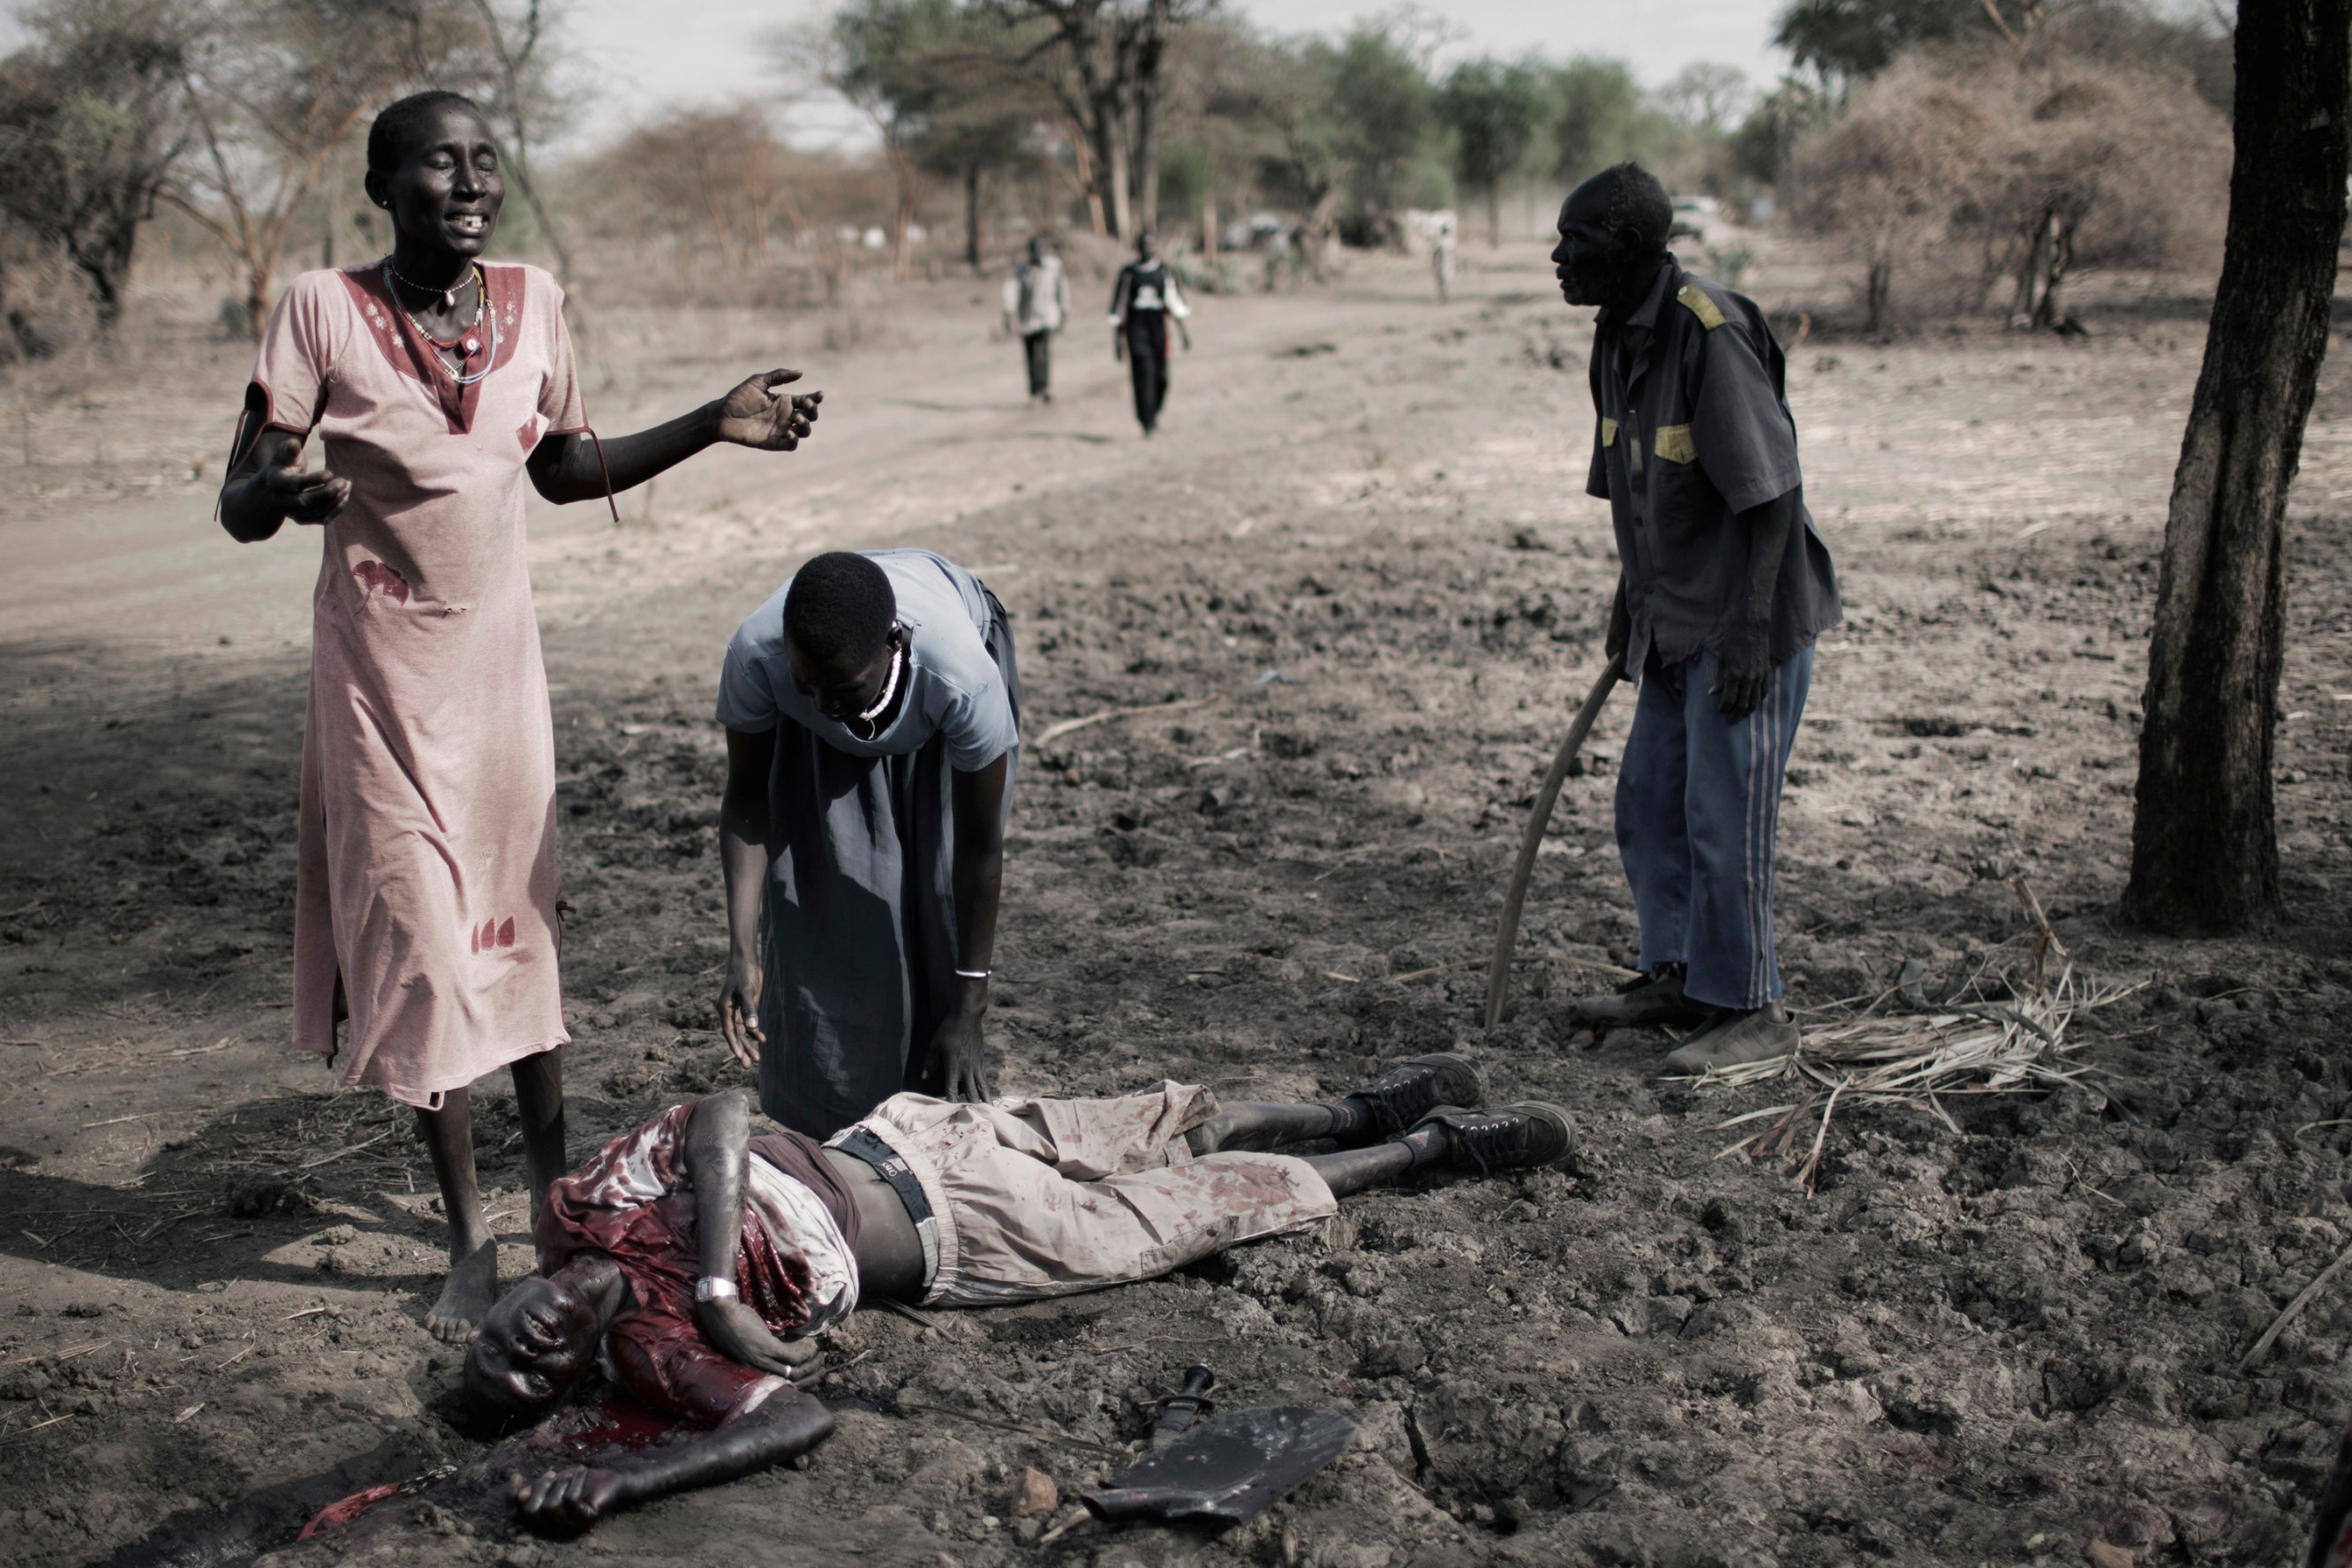 The wife of a man stabbed to death with a spear, cries beside his bloodied corpse in Doro refugee camp. The death was the result of an inter-tribal conflict, one of many assaults and murders occuring in the refugee camps of South Sudan.